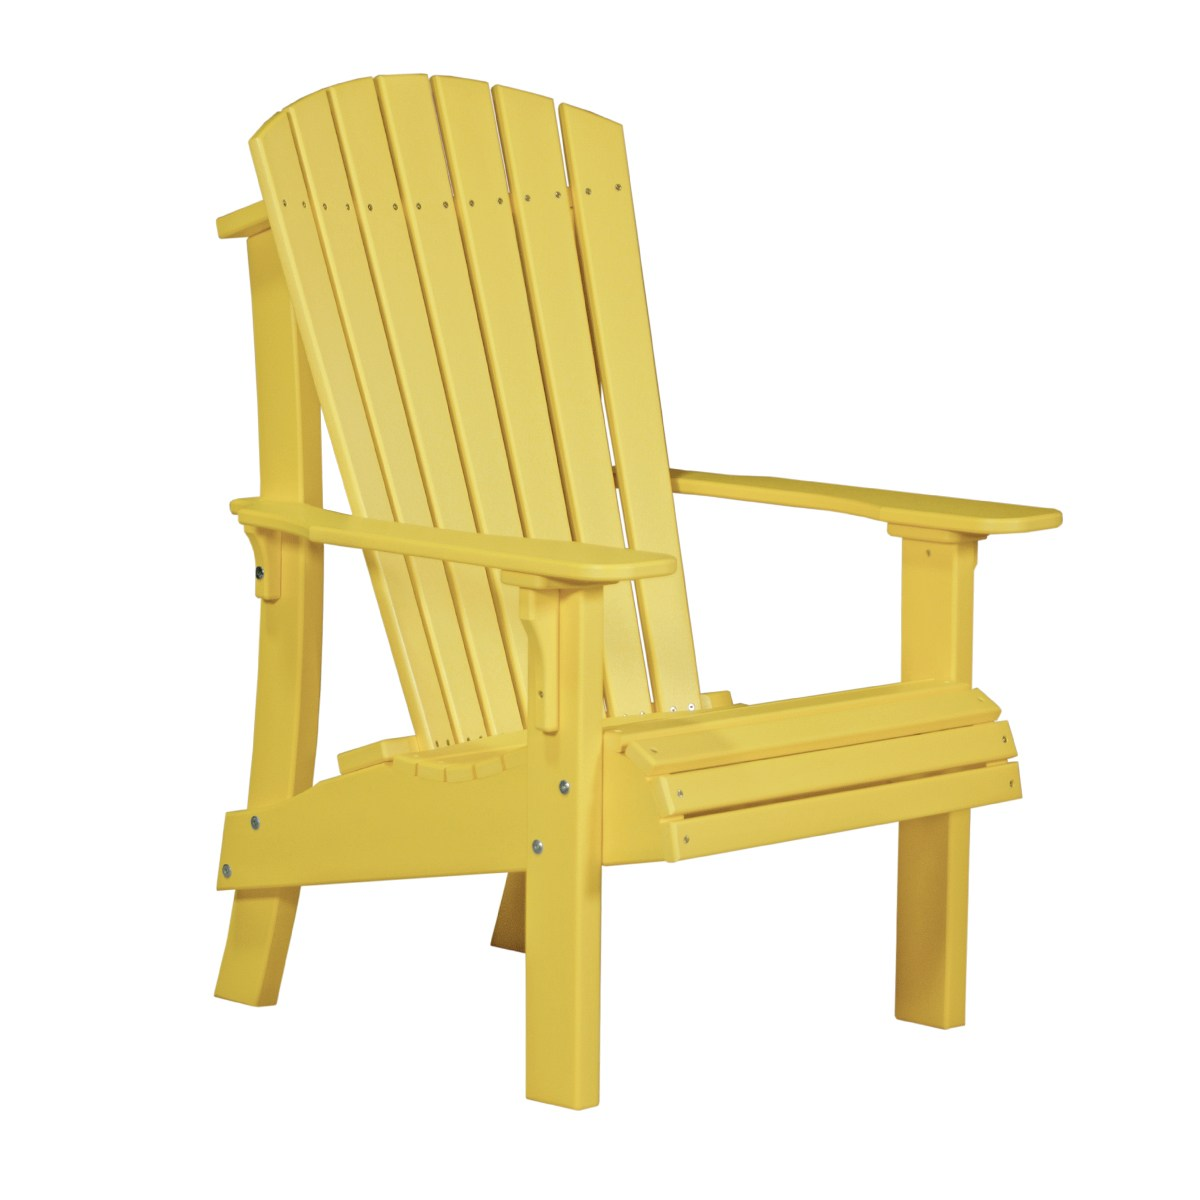 yellow adirondack chairs plastic office chair arms royal recycled patio fine oak things